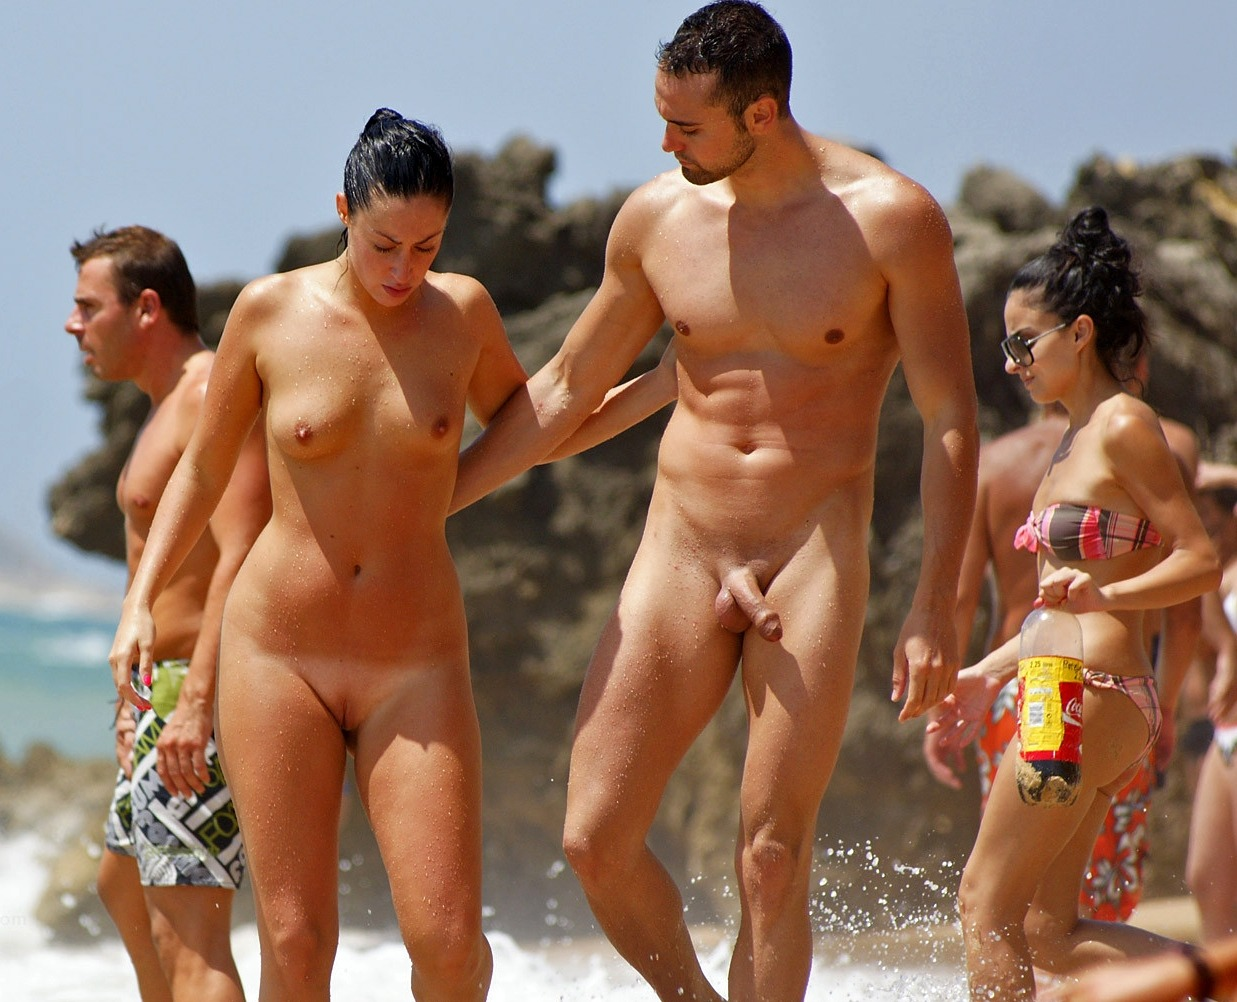 Locals upset over three nudist beach signs outside dalkey south dublin